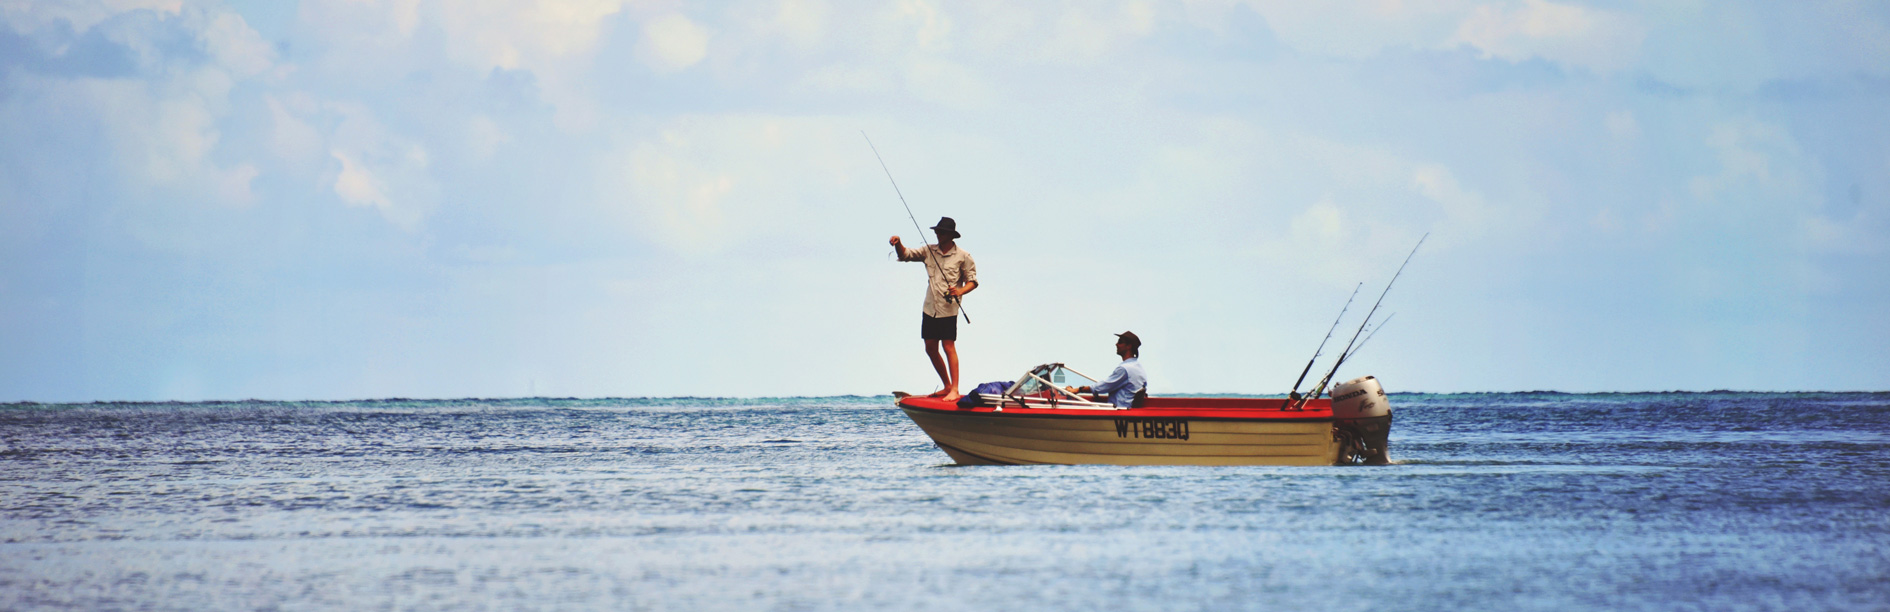 Fishing in Mackay Region